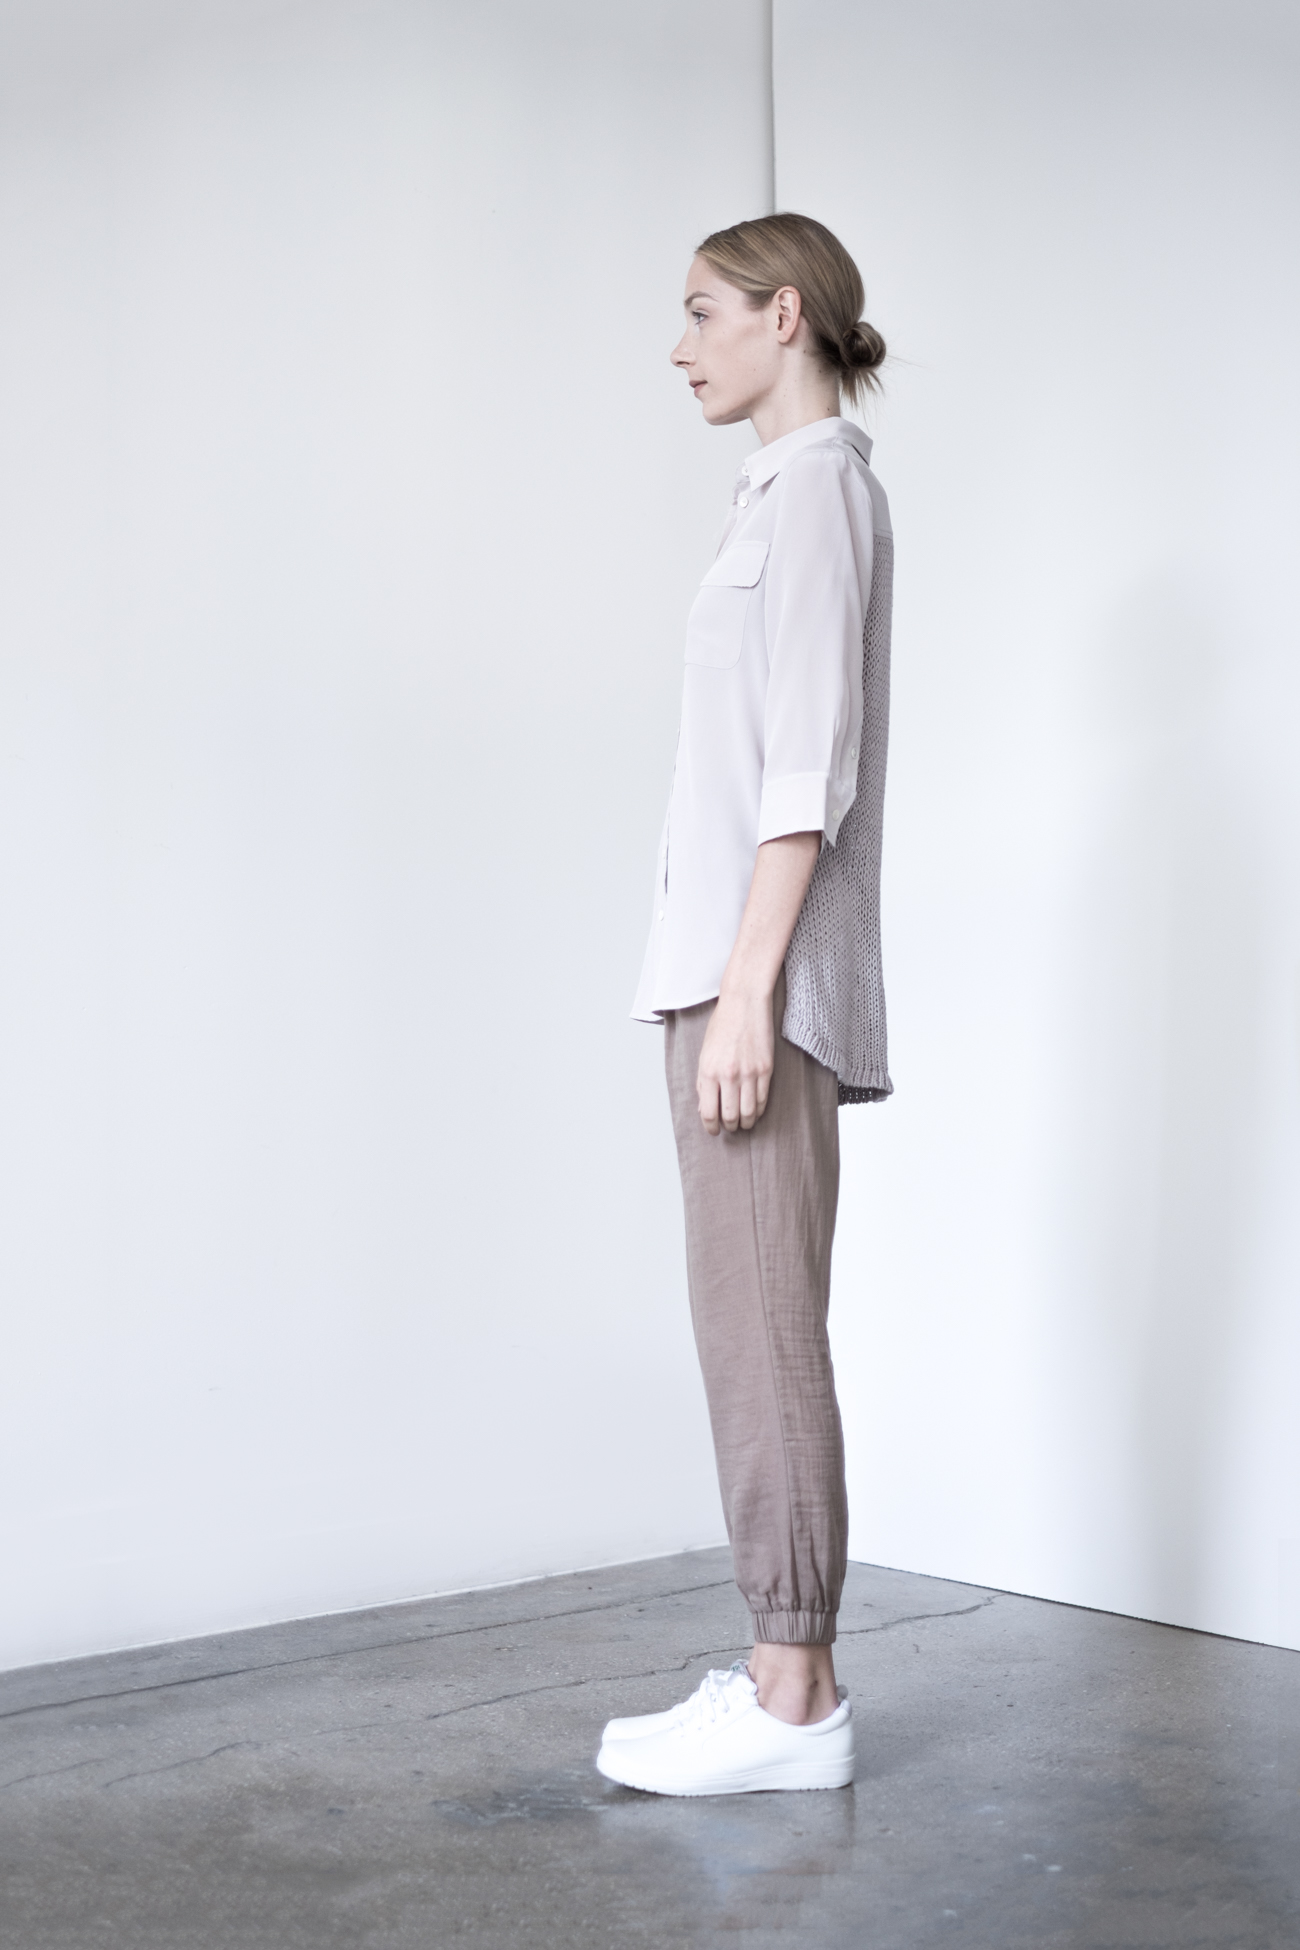 LOOK 26   TOP:   2268  / Dove   -     Jane 3/4 Sleeve silk blouse with sweater back insert.   BOTTOM:   2290  / Timber  -   Jogger pants in 100% Cotton woven dbl. layer gauze.